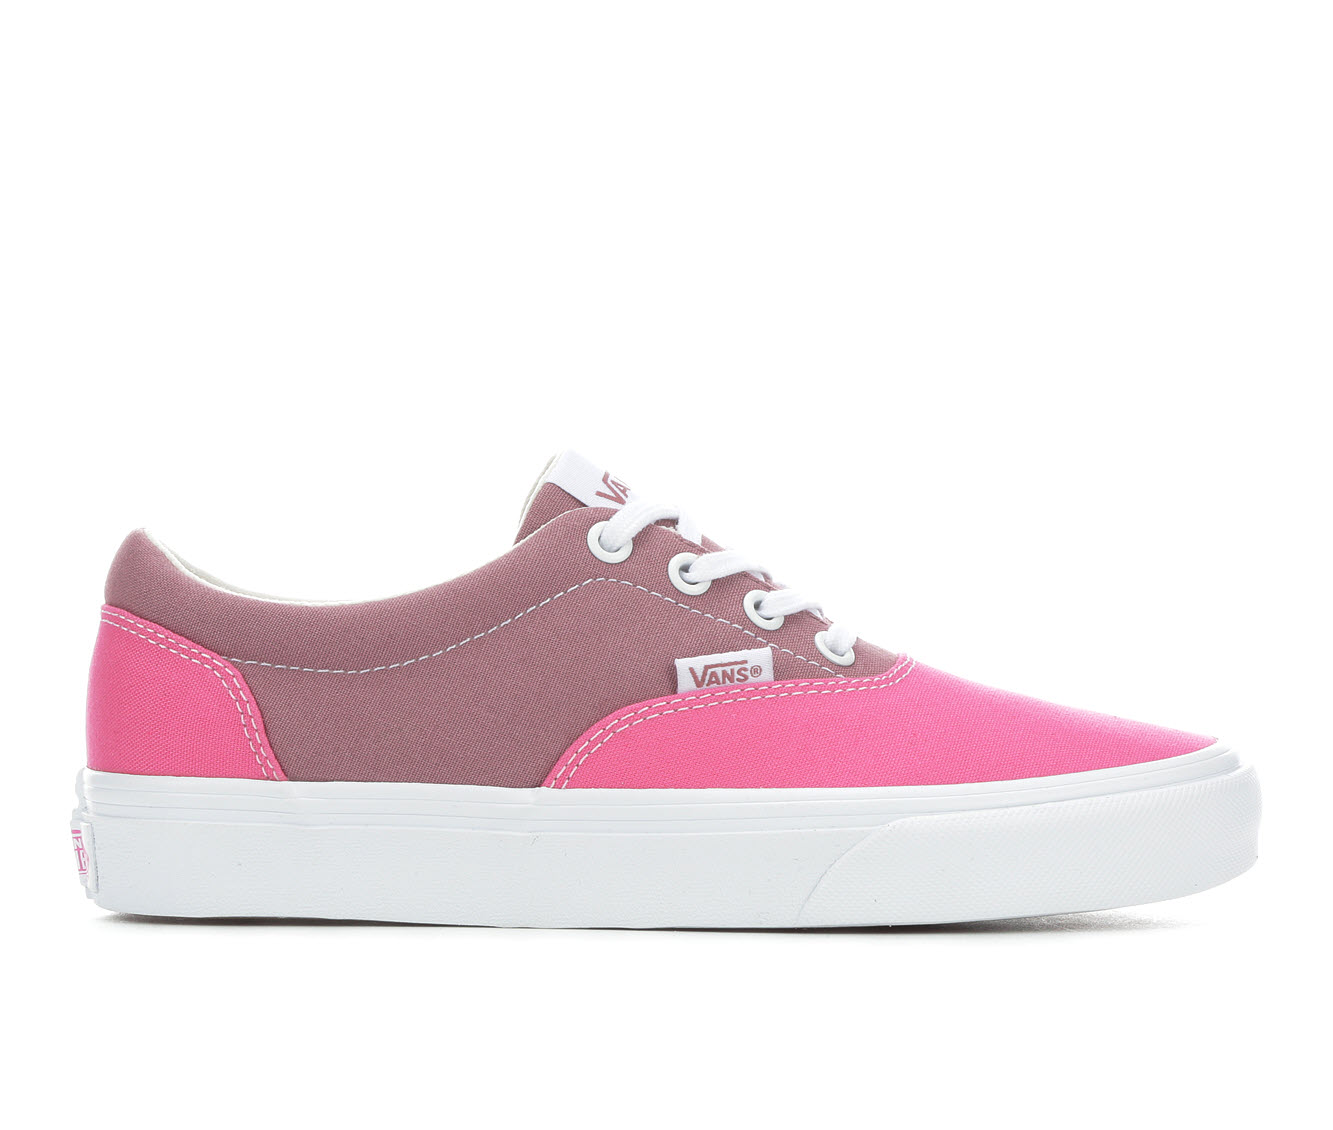 Vans Doheny Two Tone Women's Athletic Shoe (Pink)